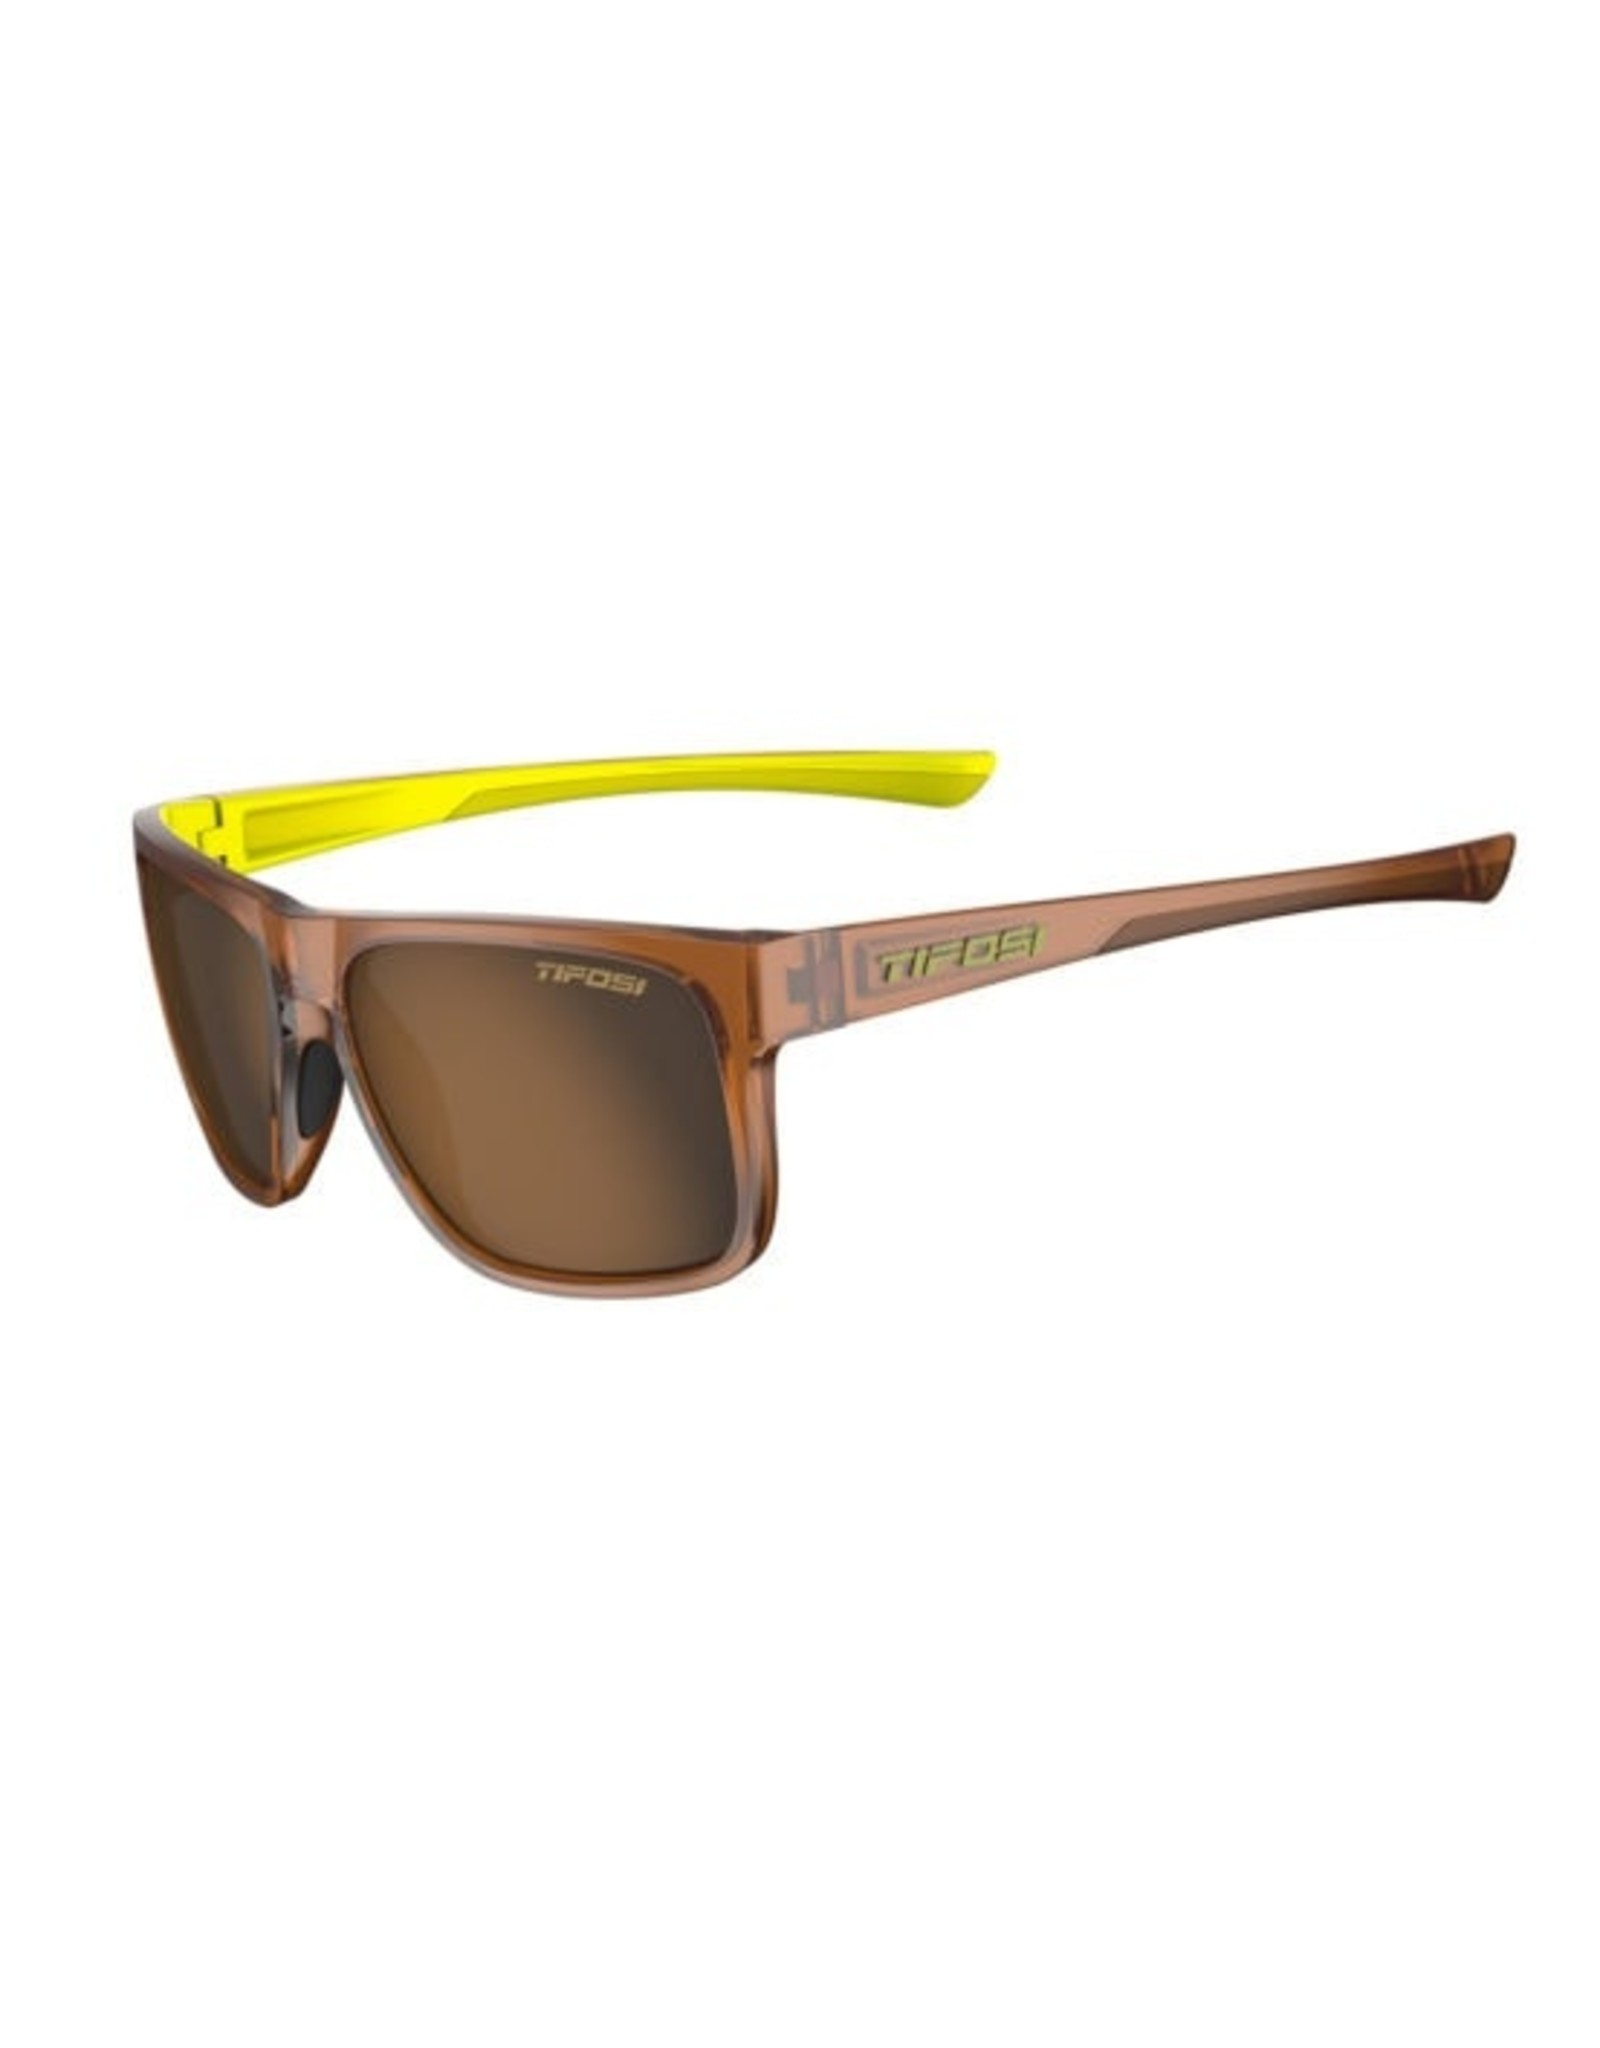 Tifosi Optics Swick, Caramel/Neon Polarized Sunglasses